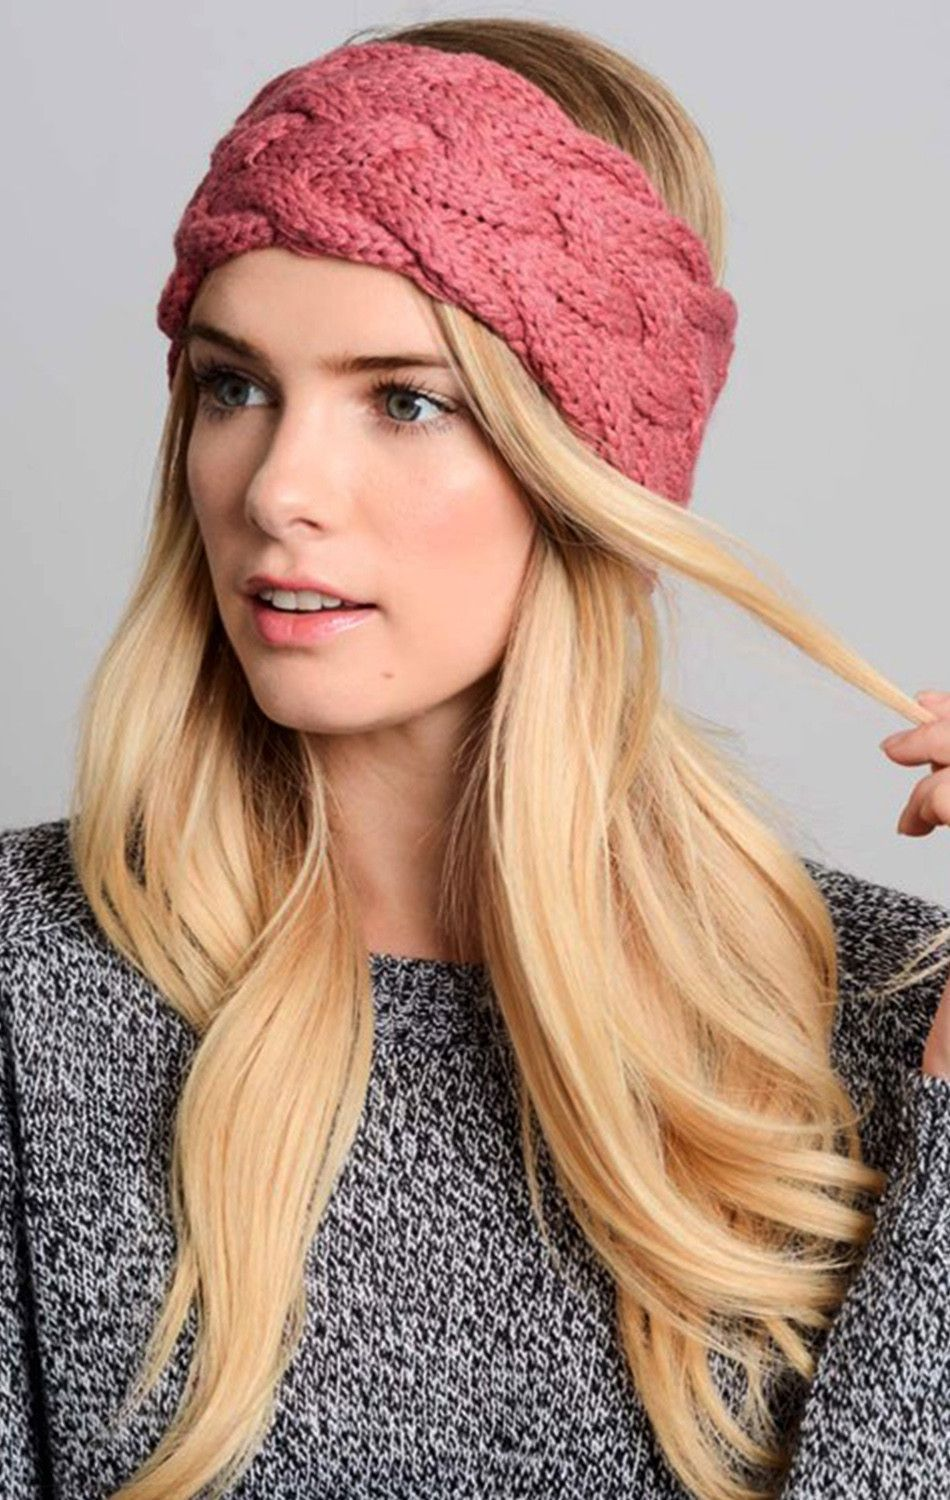 Lola Braided Knit Headband - Rose | Stricken | Pinterest | Mütze ...